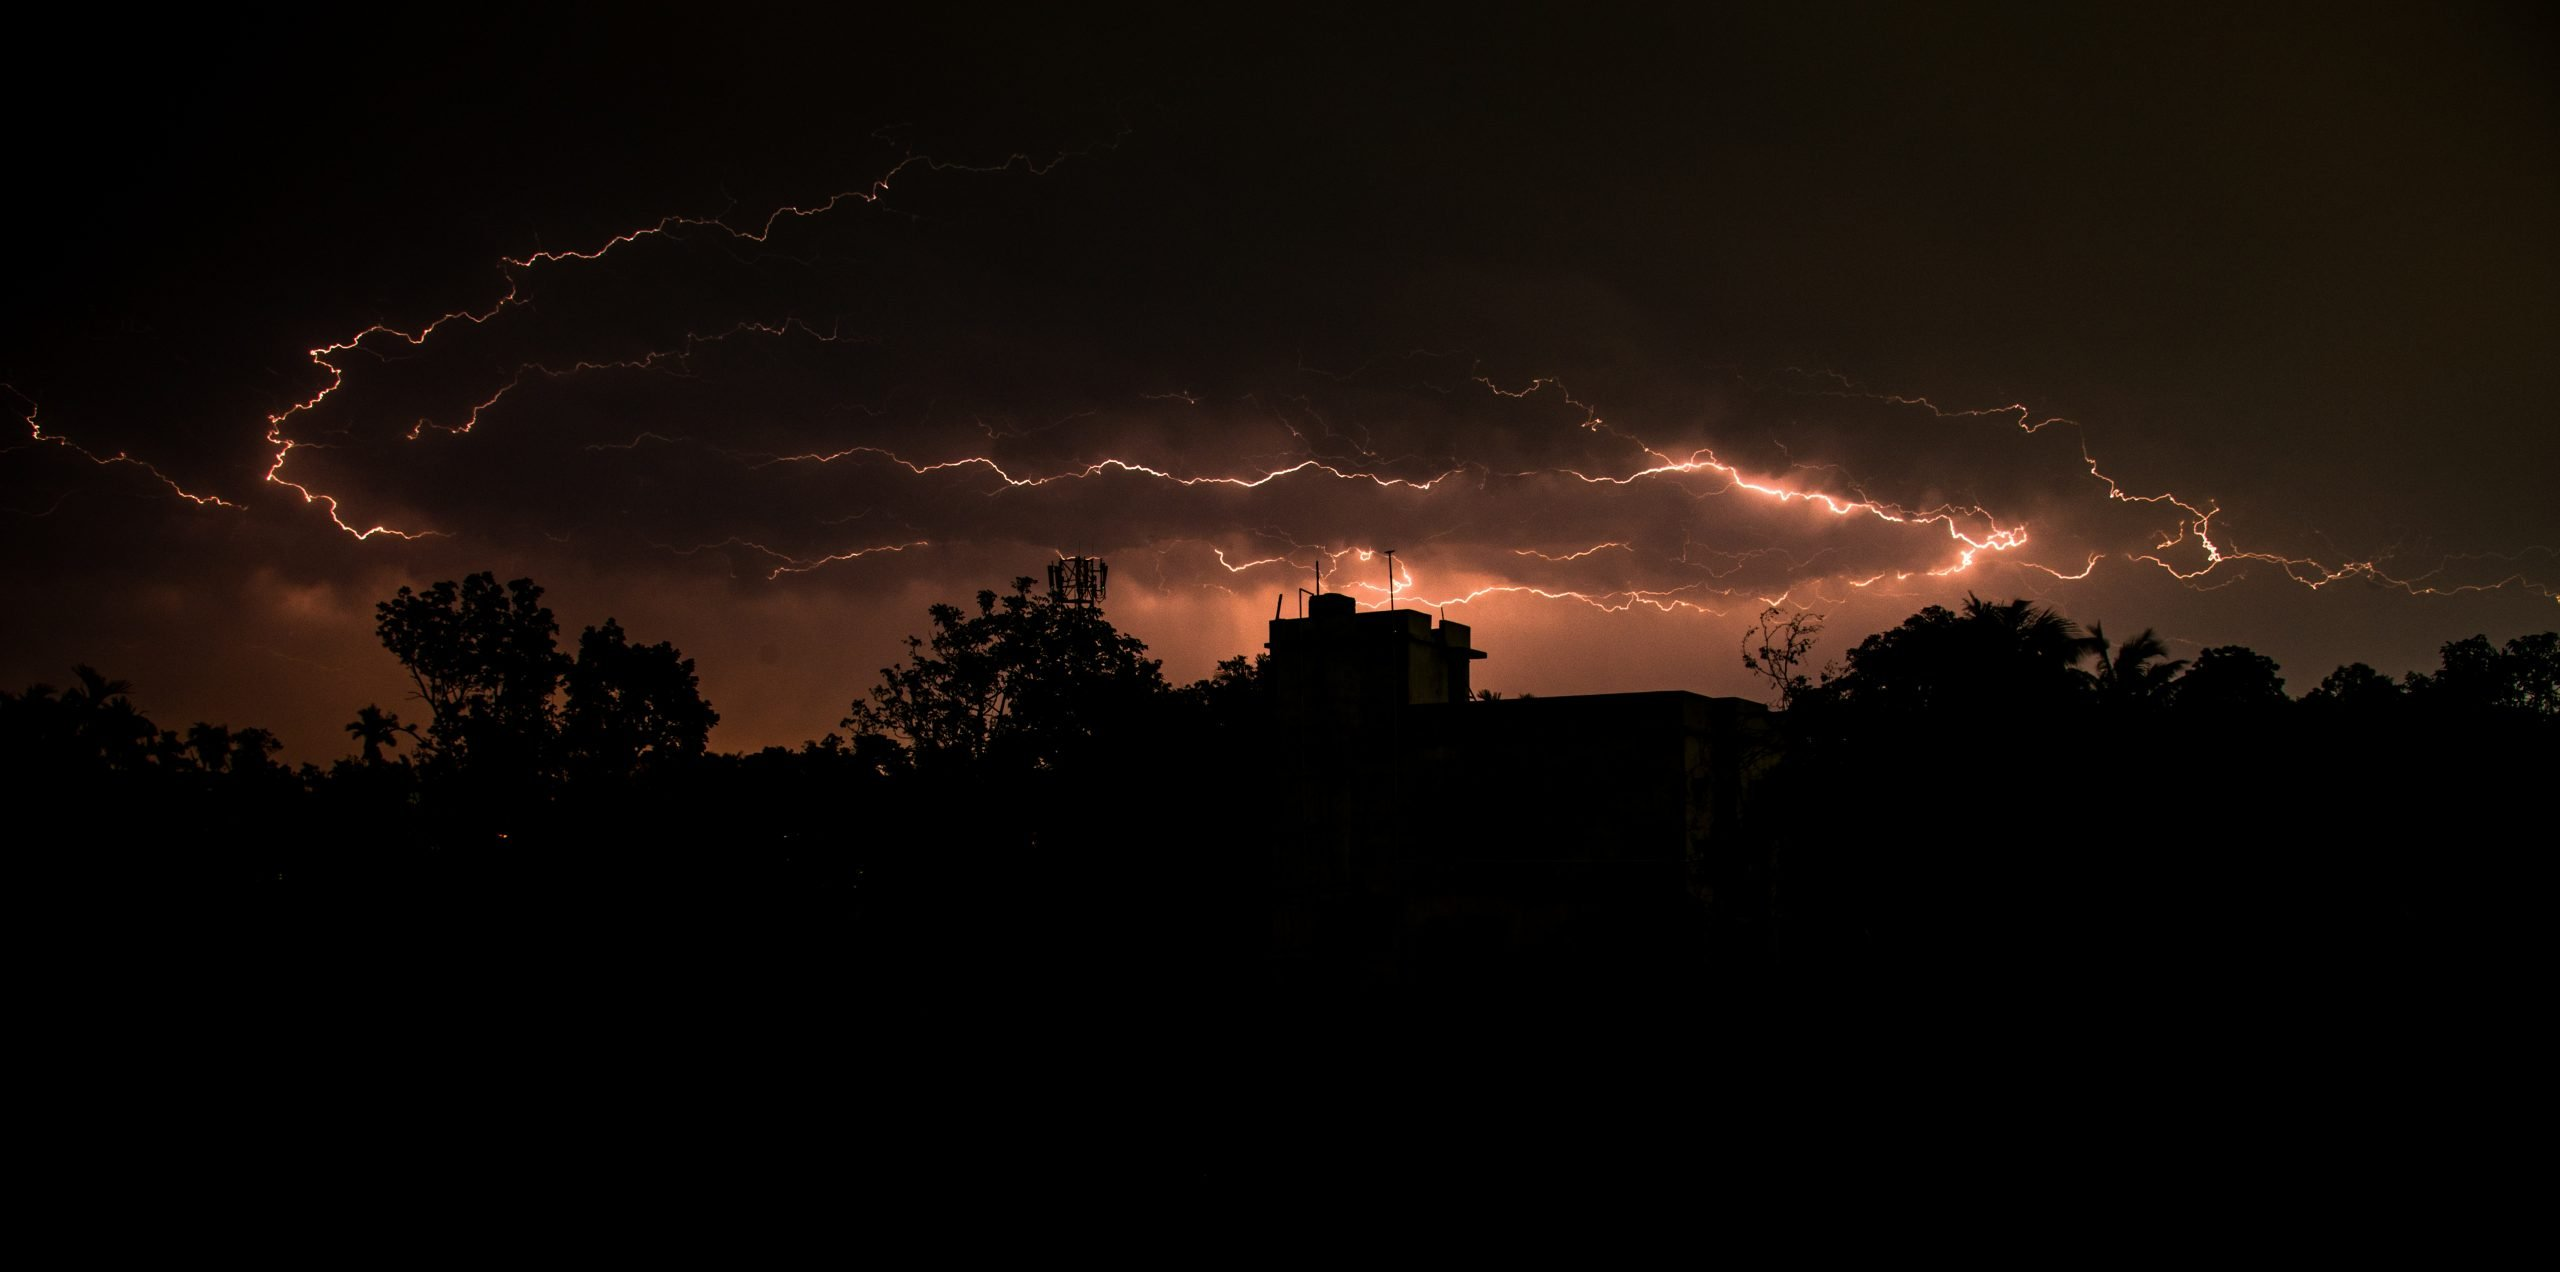 Lightning in Darkness